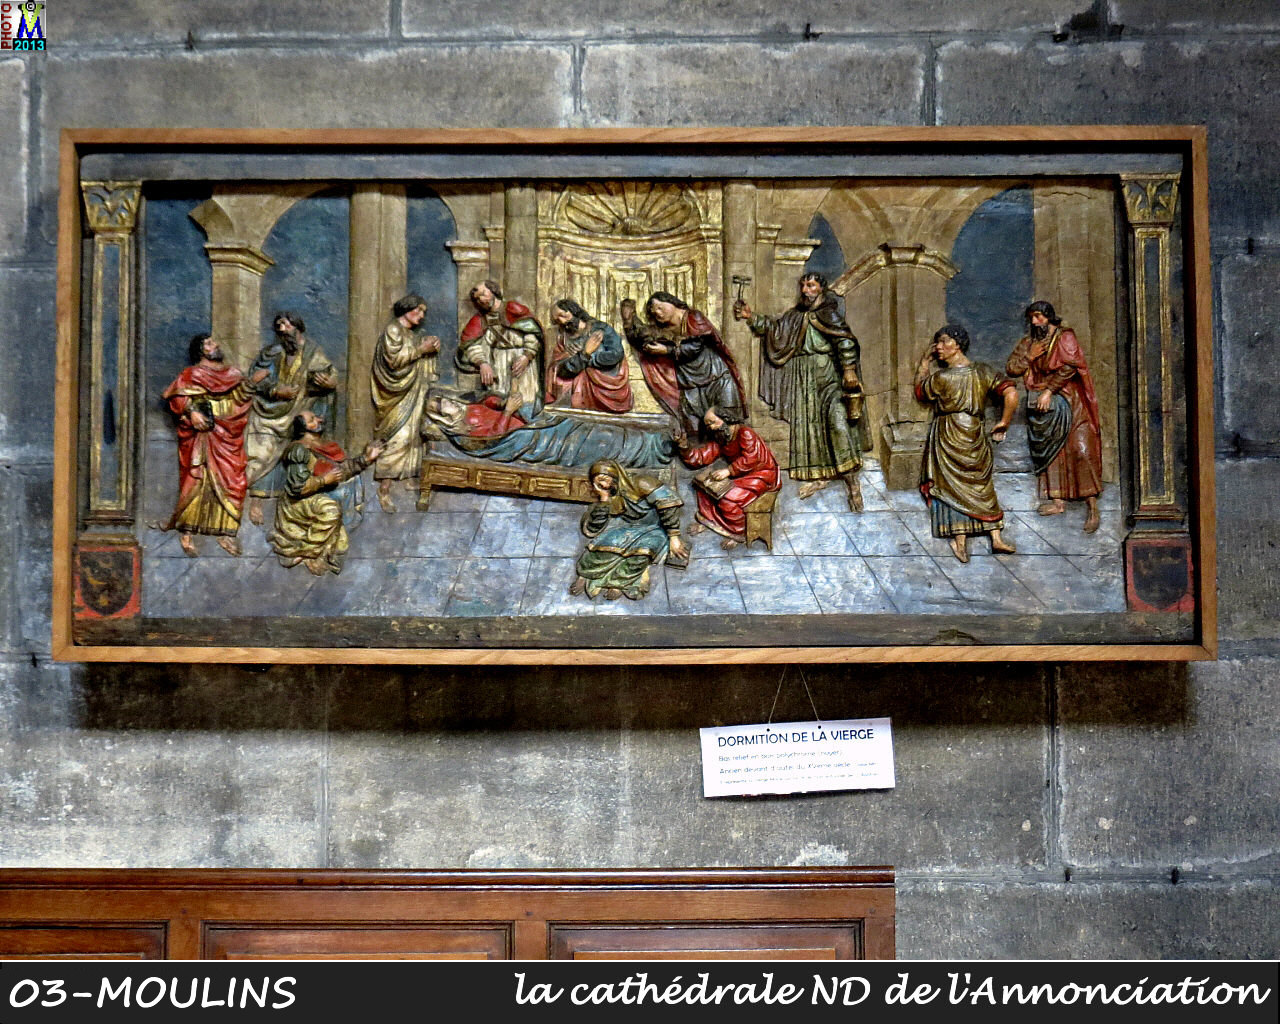 03MOULINS_cathedrale_282.jpg